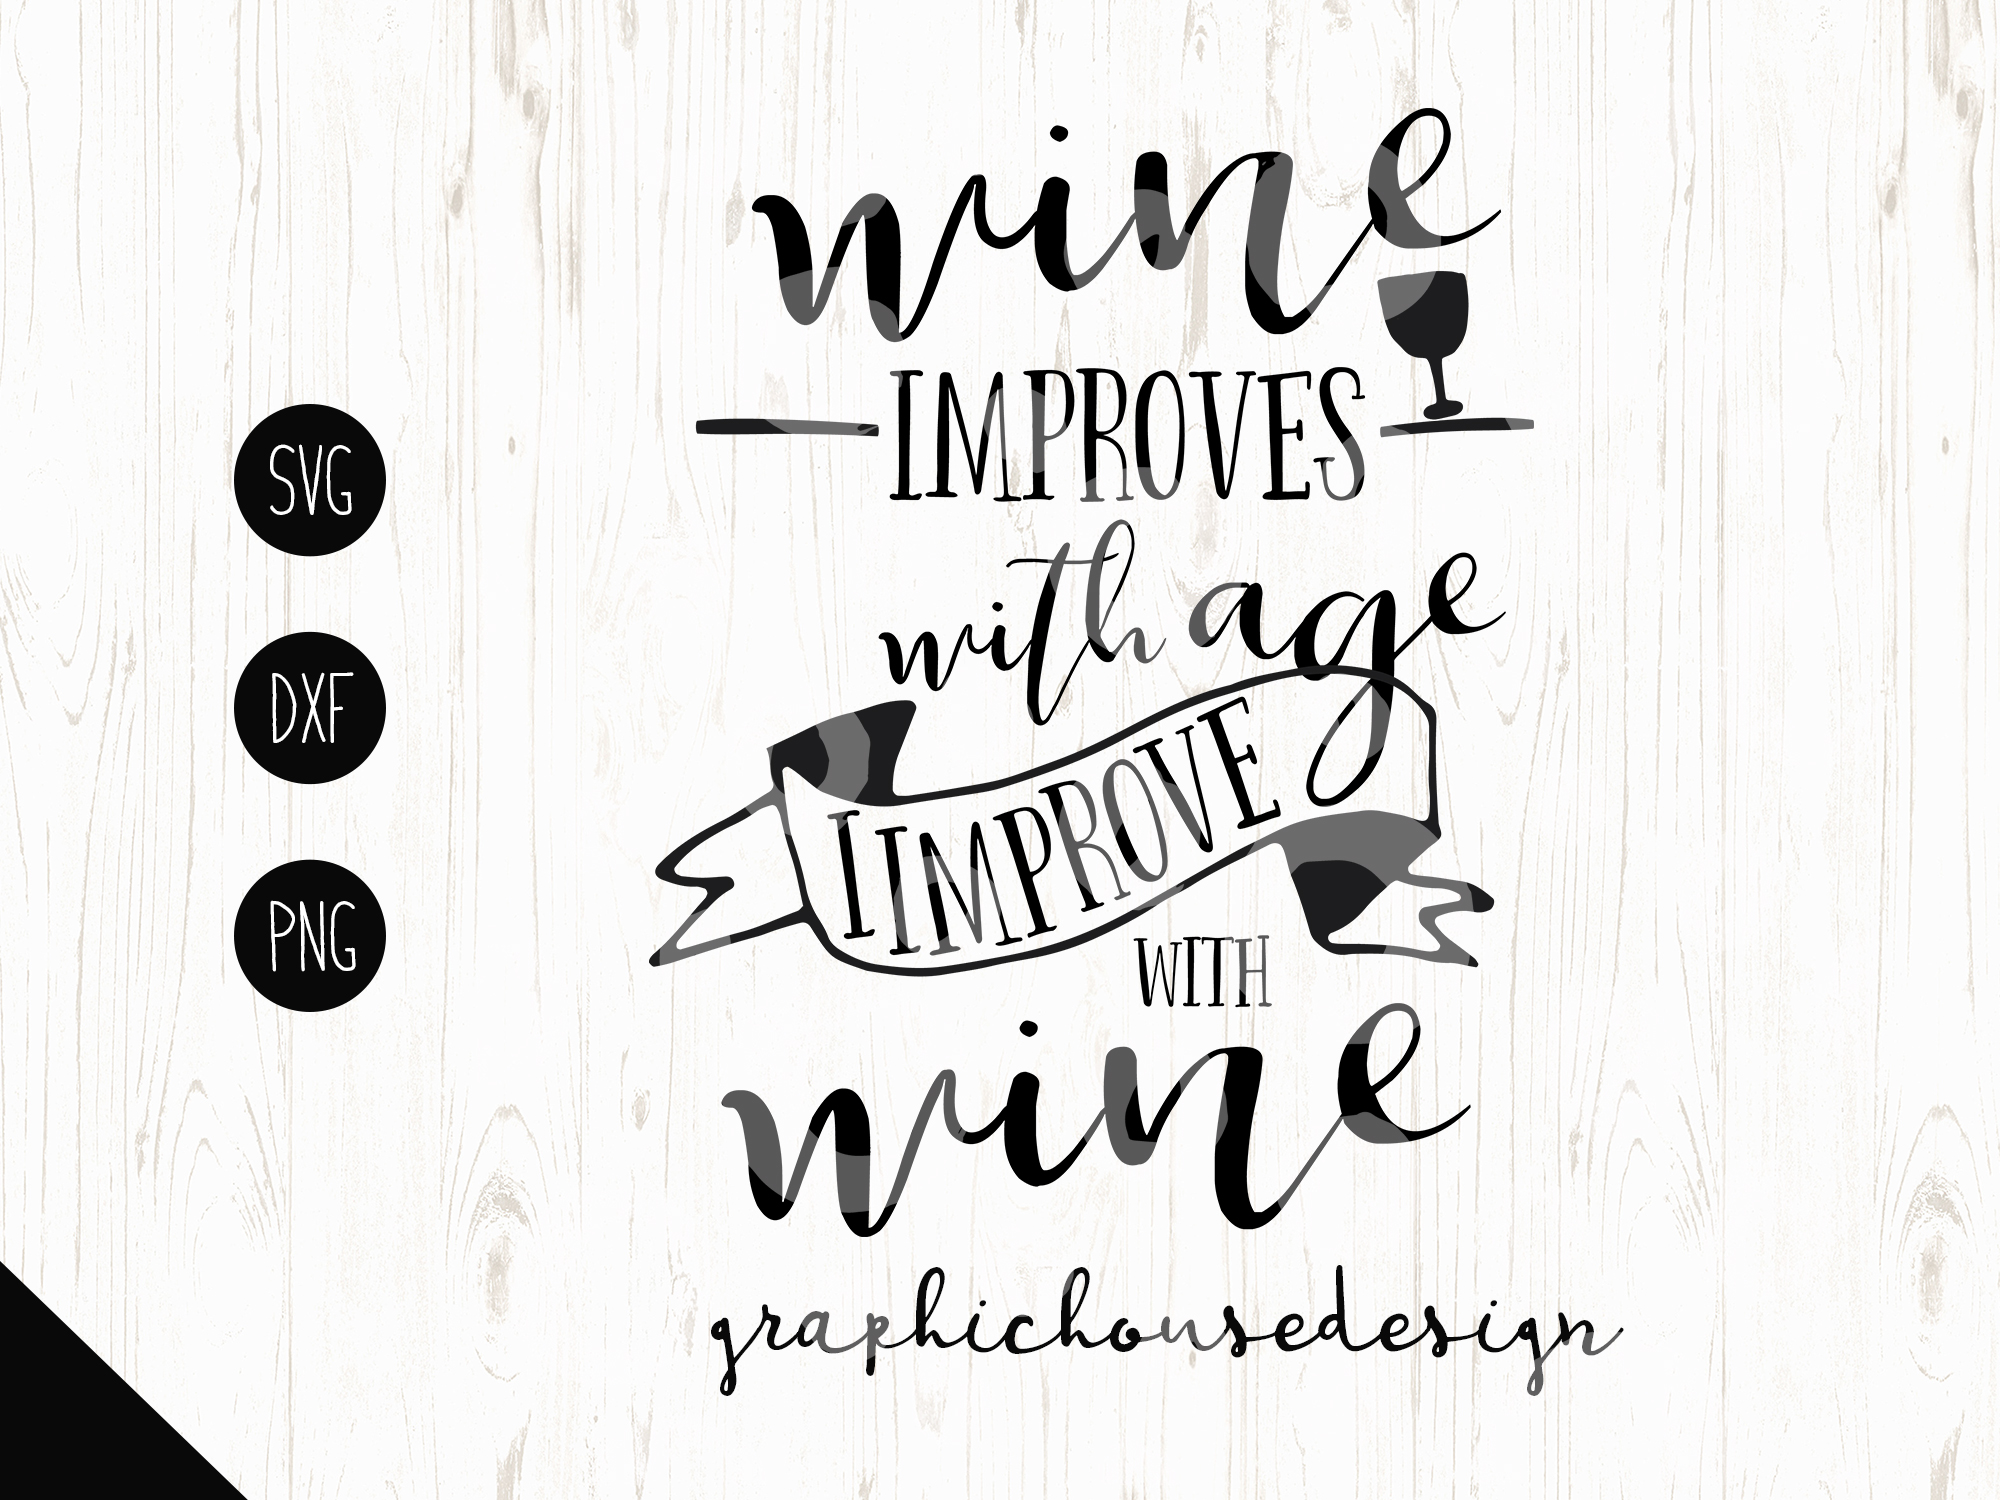 Wine Improves with Age I improve with Wine Cutting File (SVG, DXF, PNG) example image 2